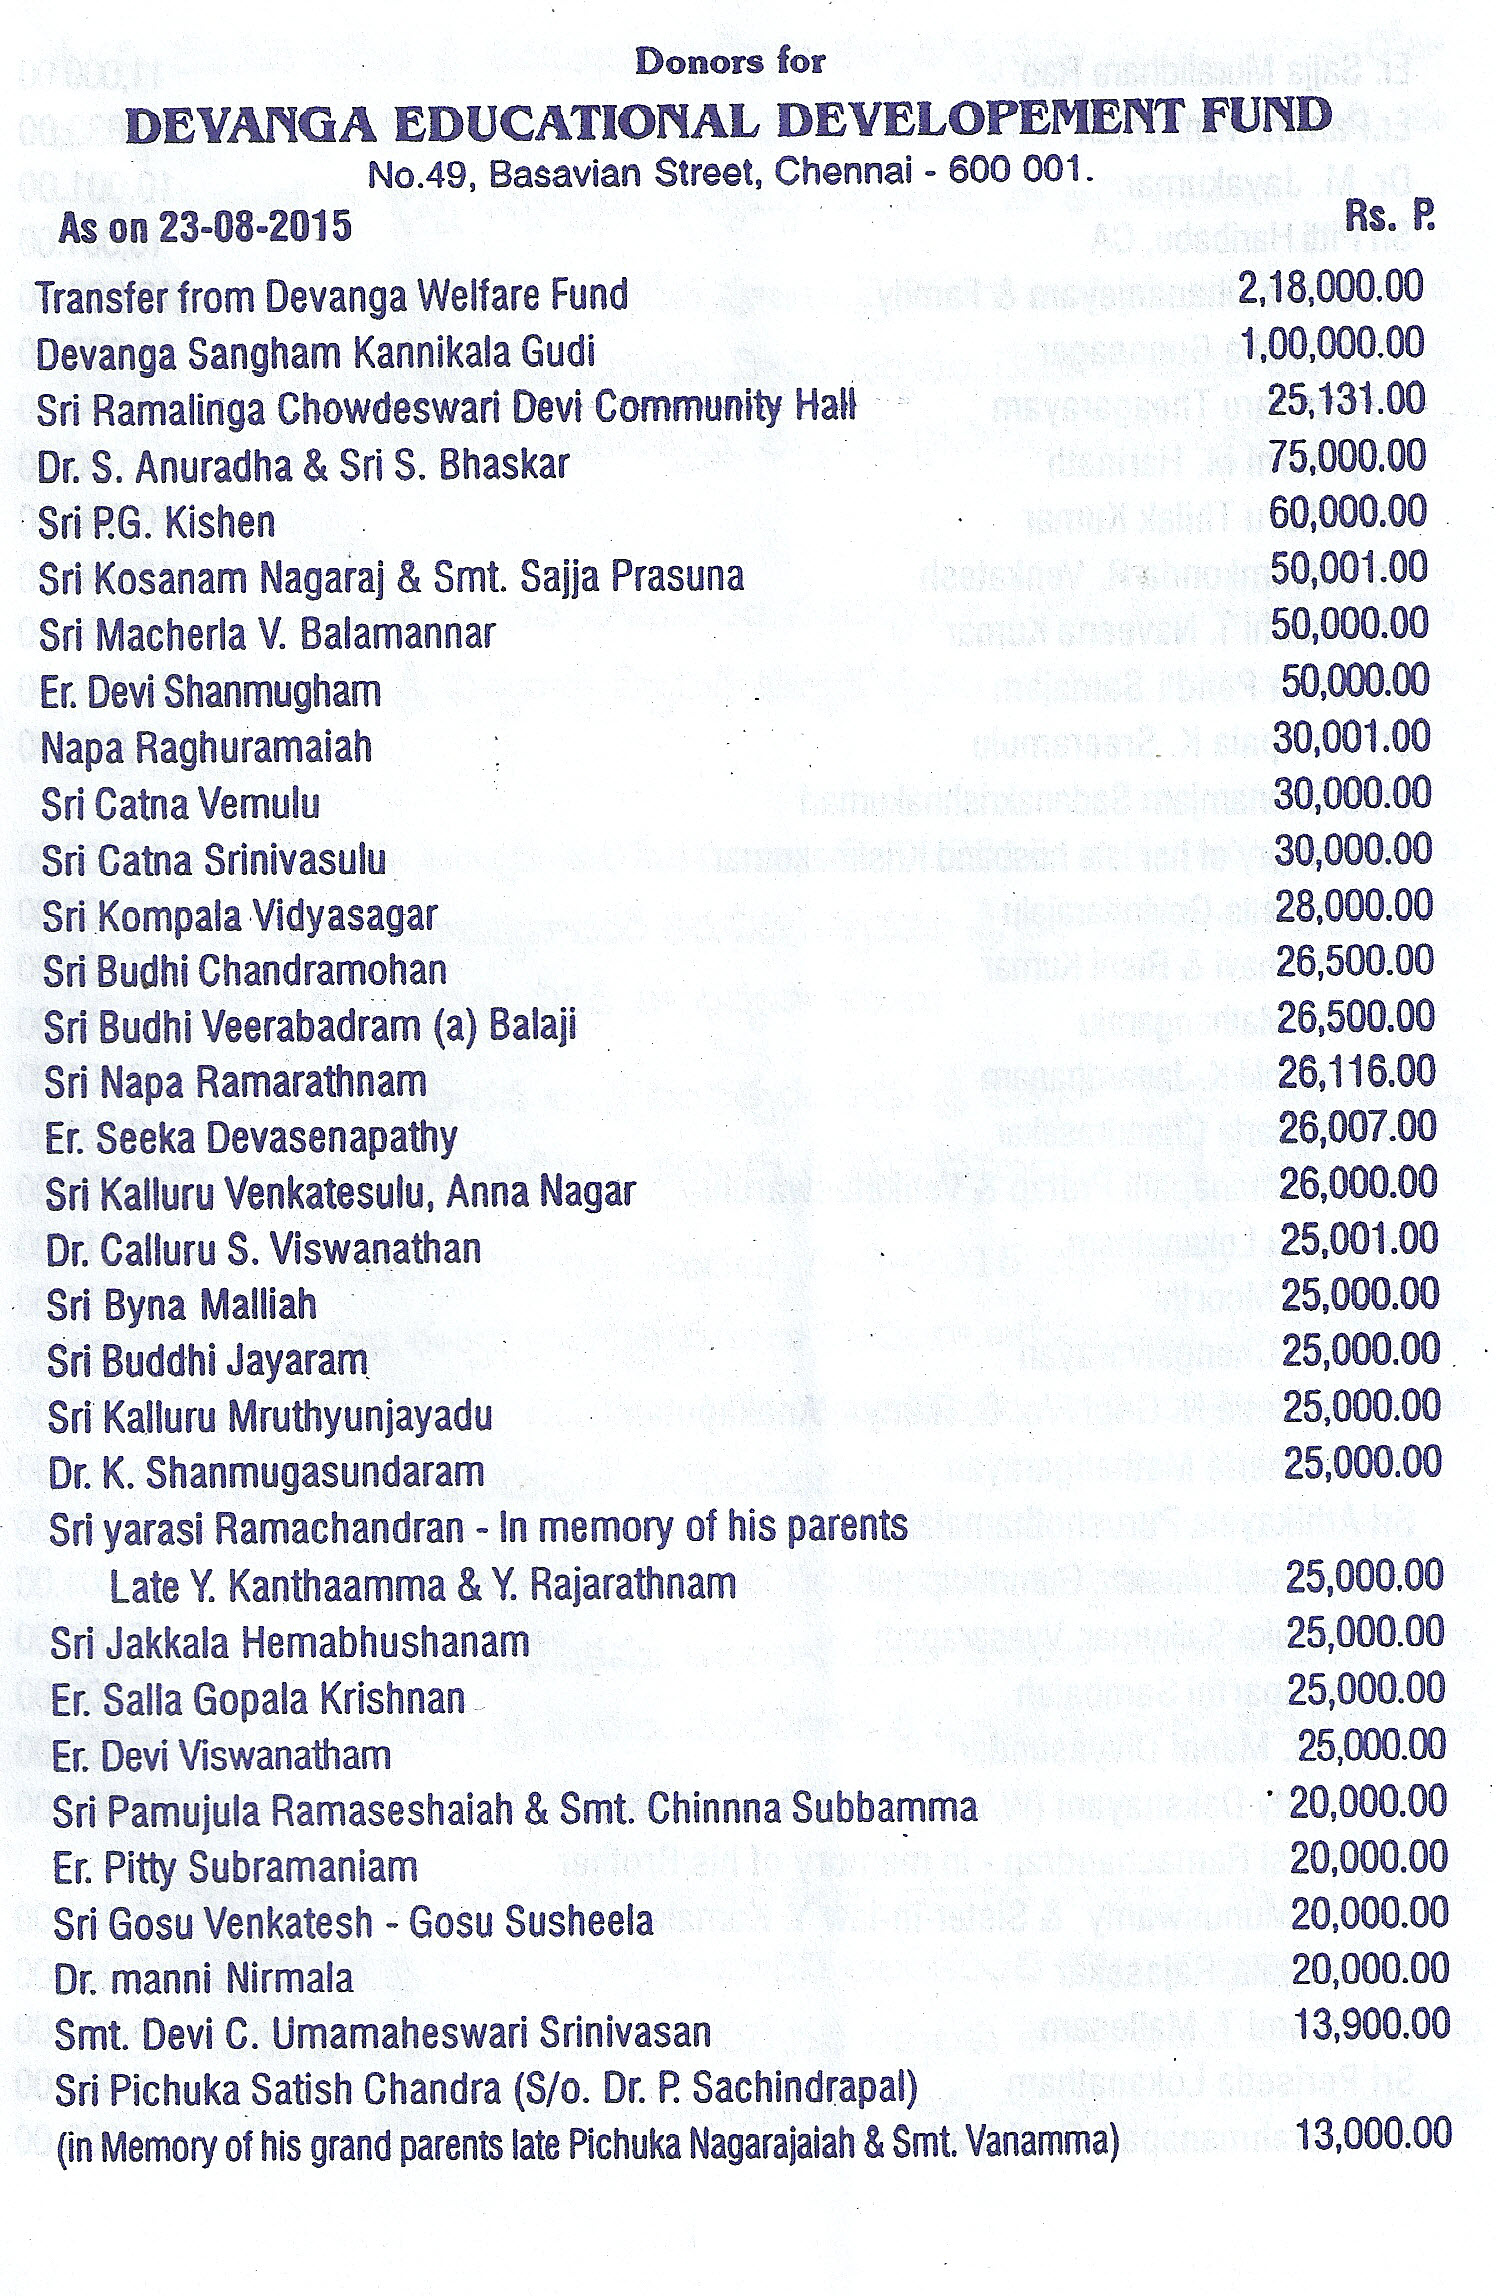 devanga educational development fund donors list